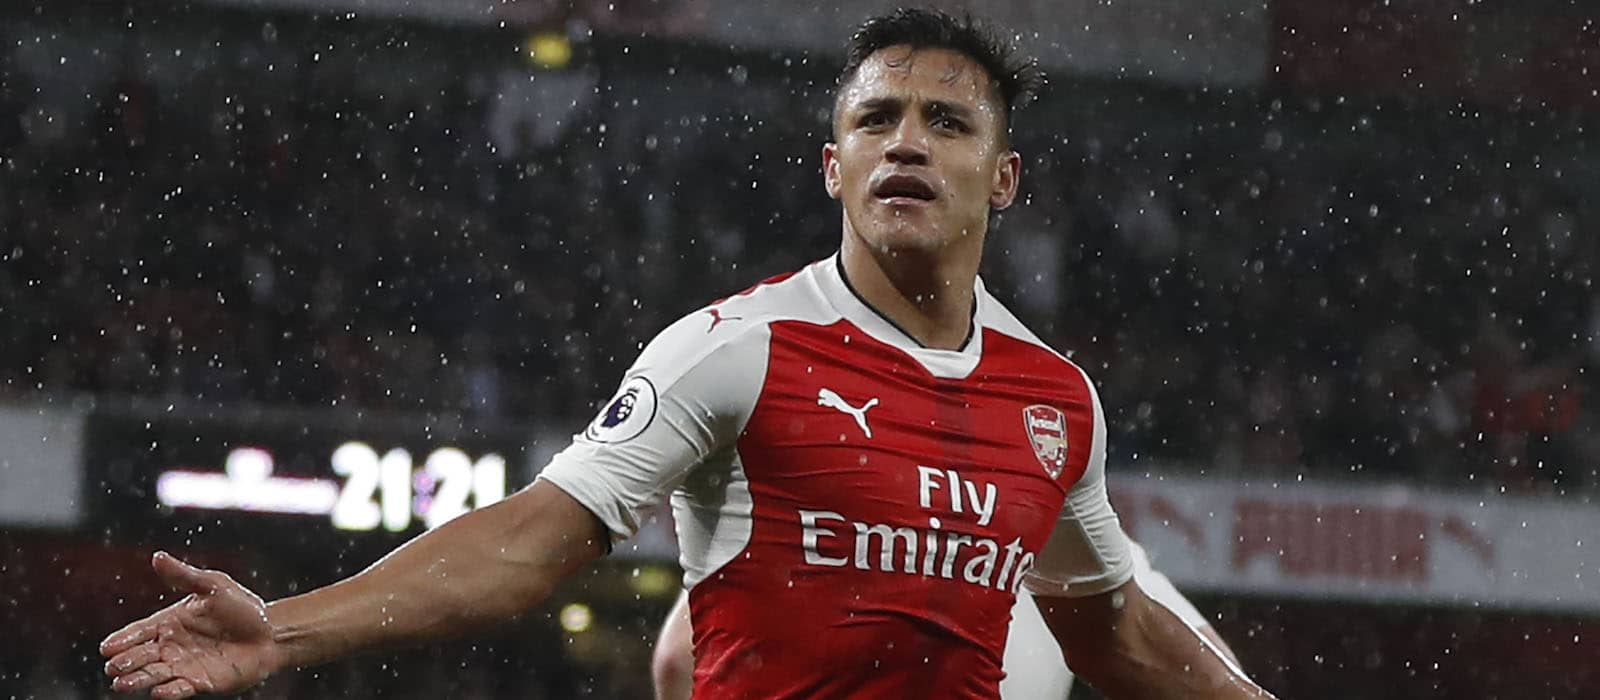 Arsene Wenger confirms Alexis Sanchez will leave Arsenal but insists no agreement with any club has been reached